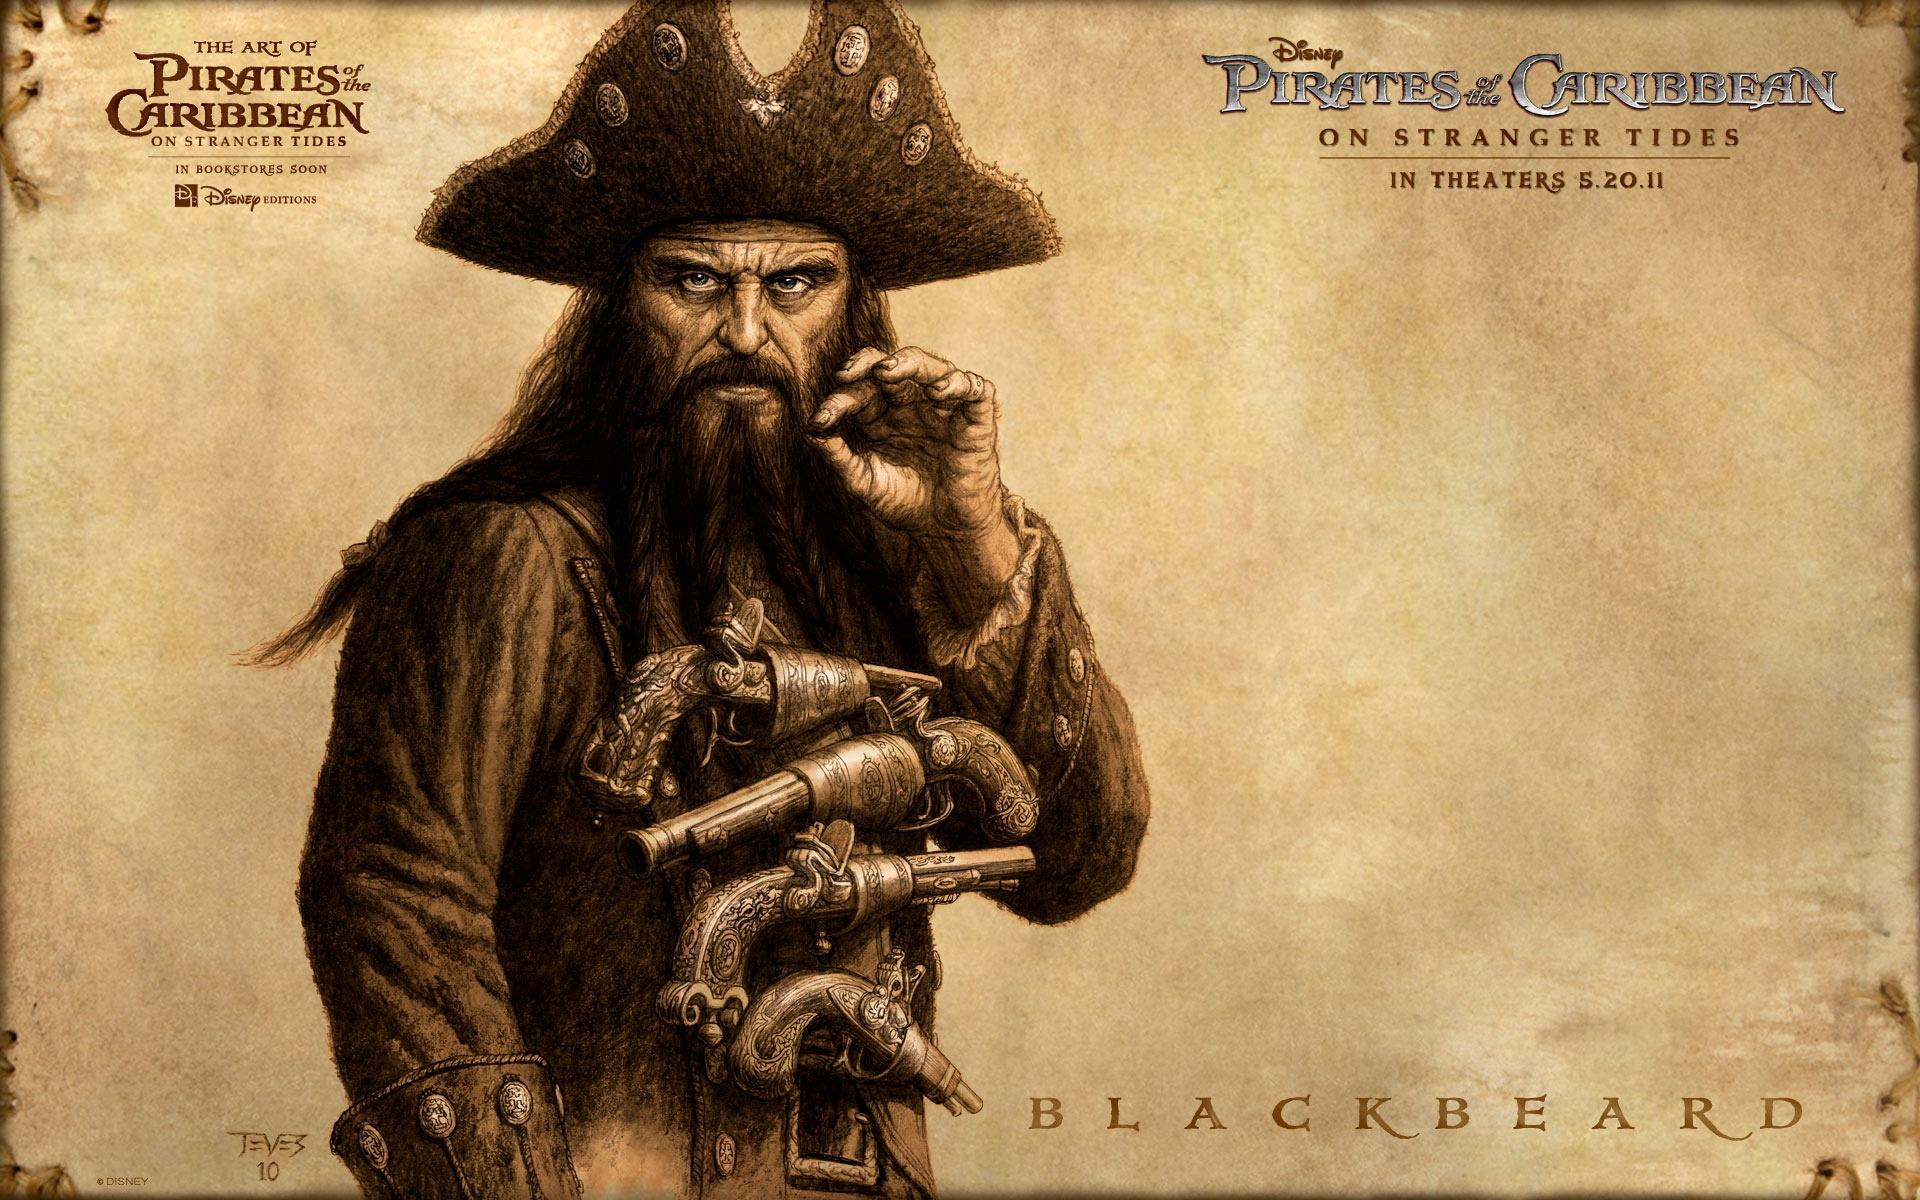 ���� ������ ���������� ���� 4, Blackbeard 1920x1200